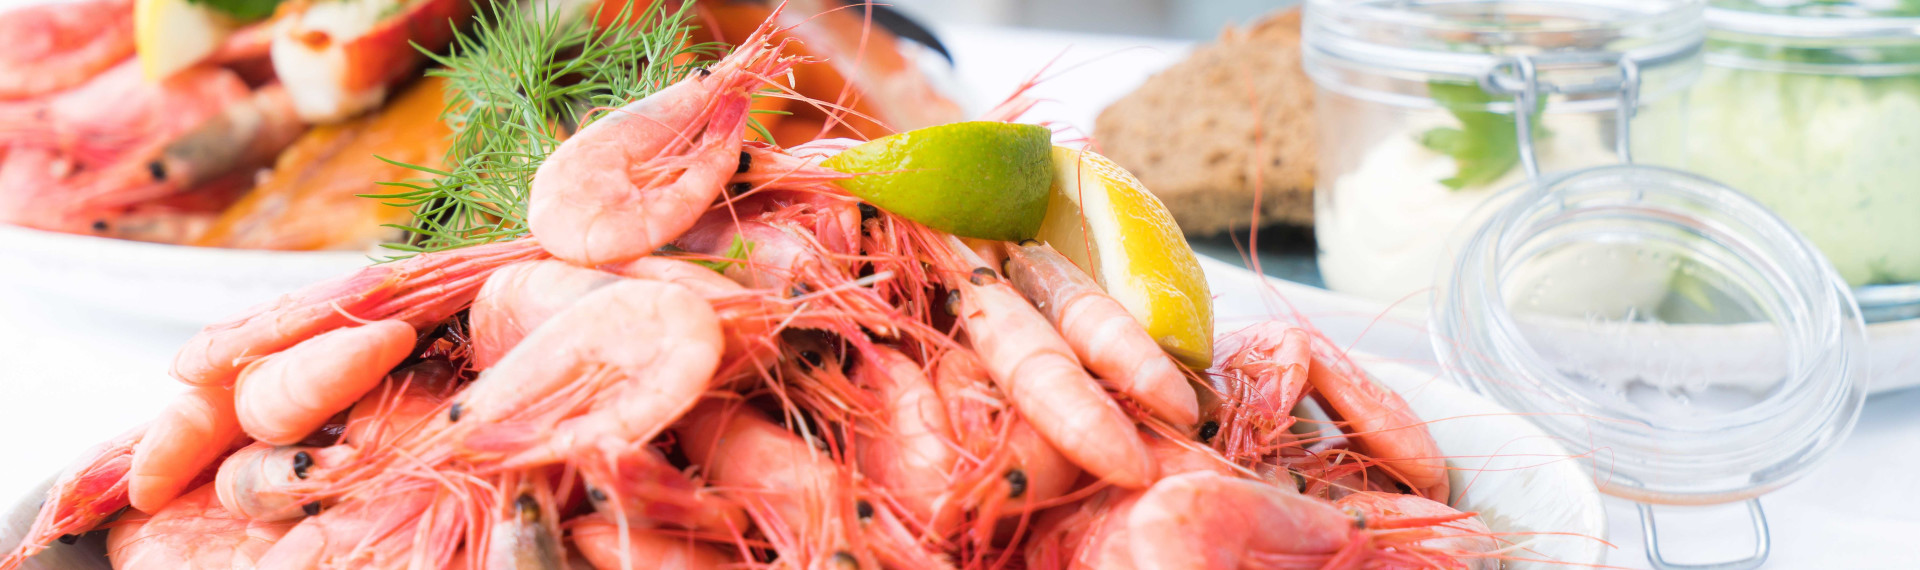 Shrimps STOCK